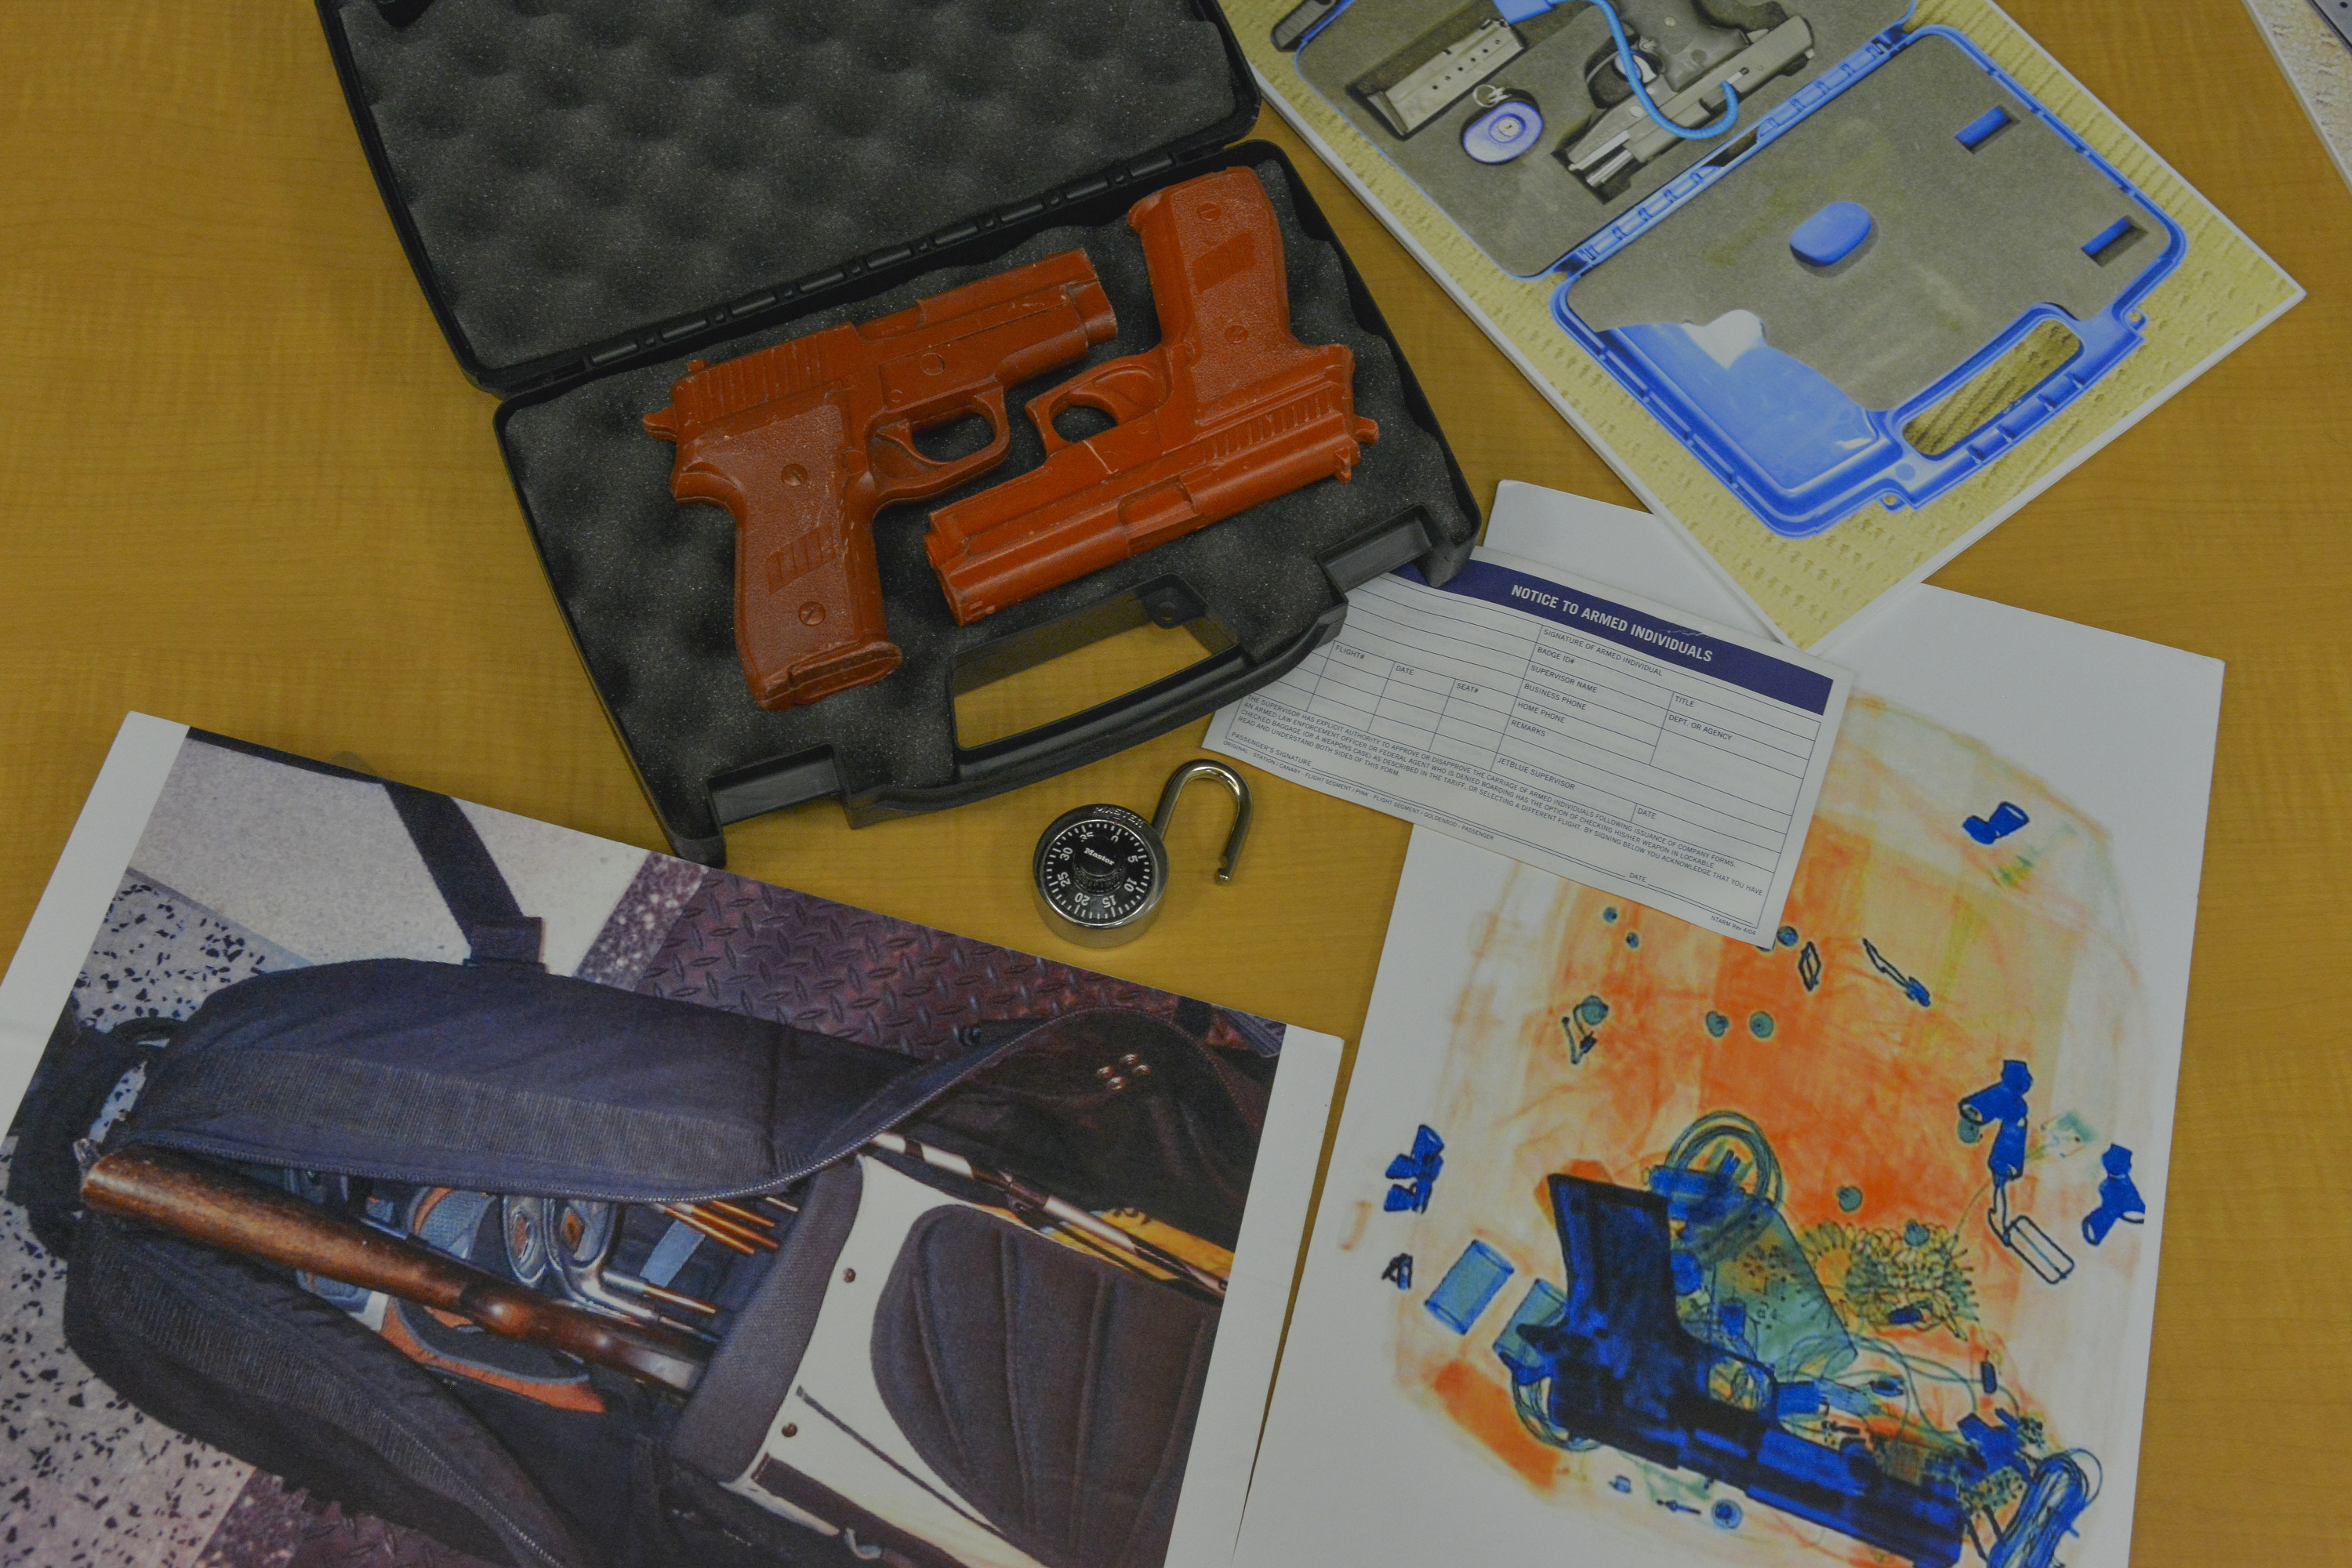 After filling out a brief disclosure form, commercial air flight travelers are allowed to transport unloaded firearms in locked, hard-sided cases as checked luggage only, as can be seen in props provided by the Transportation Security Administration (TSA) at Dulles International Airport on Wednesday, June 11, 2014, in Washington, DC.